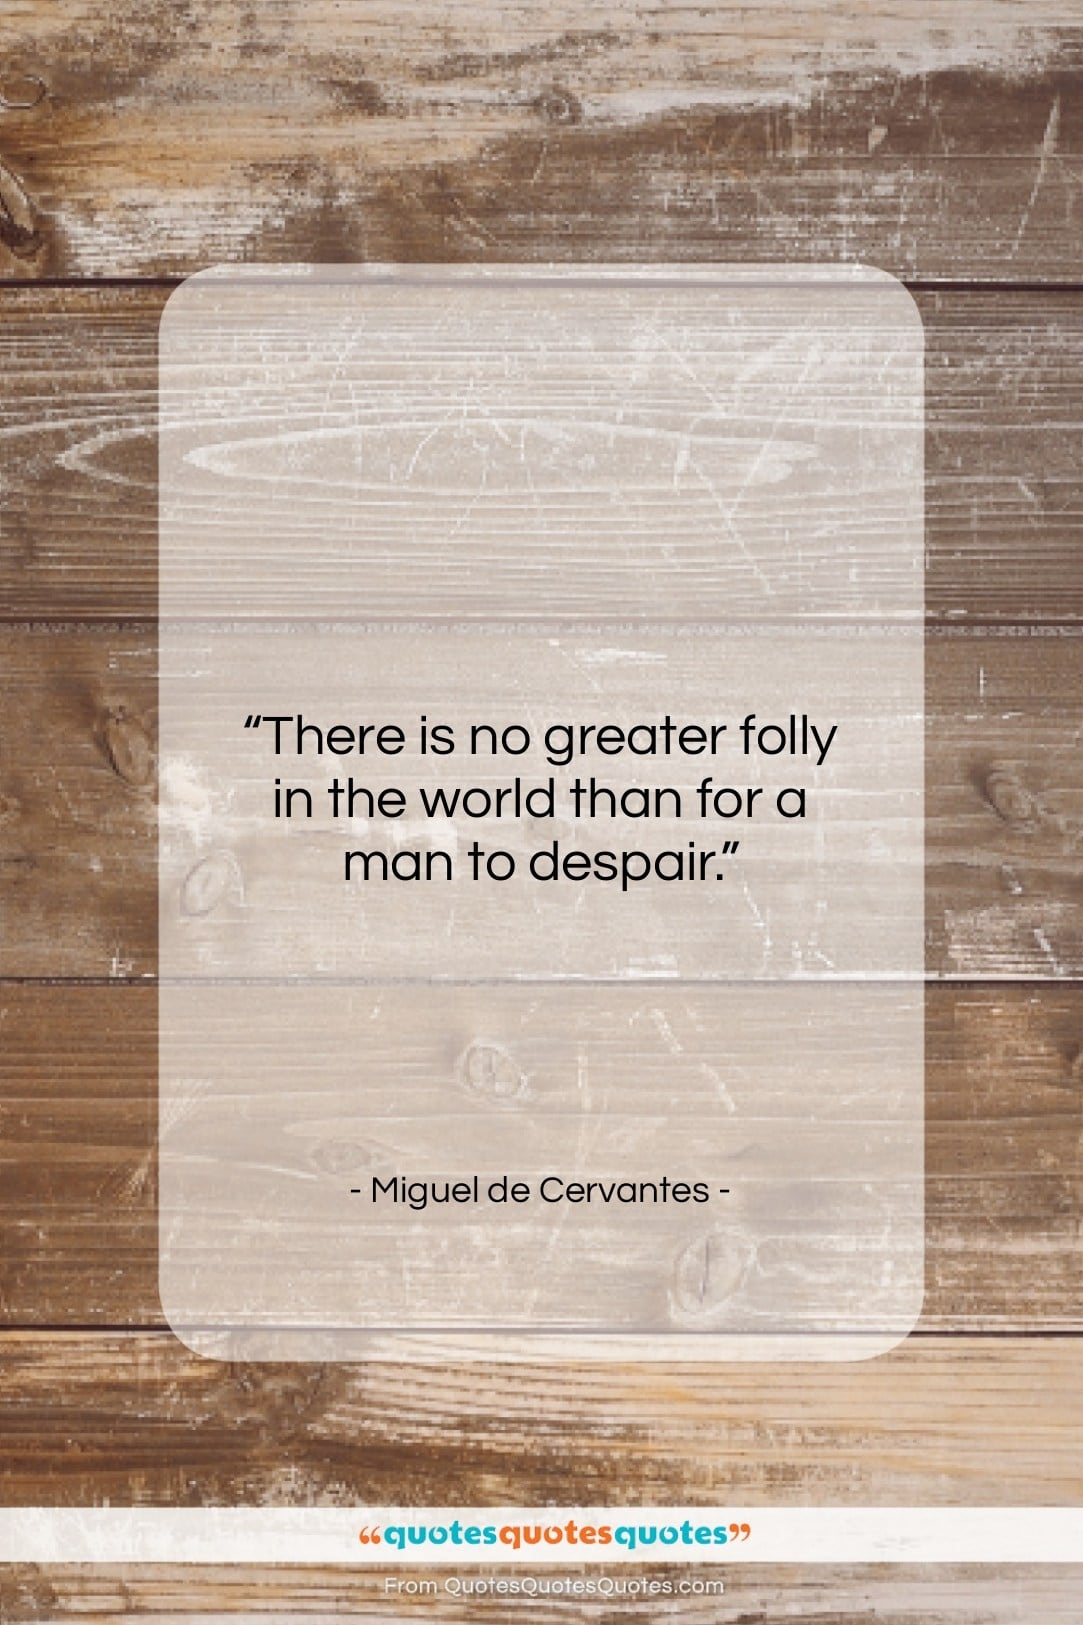 """Miguel de Cervantes quote: """"There is no greater folly in the…""""- at QuotesQuotesQuotes.com"""